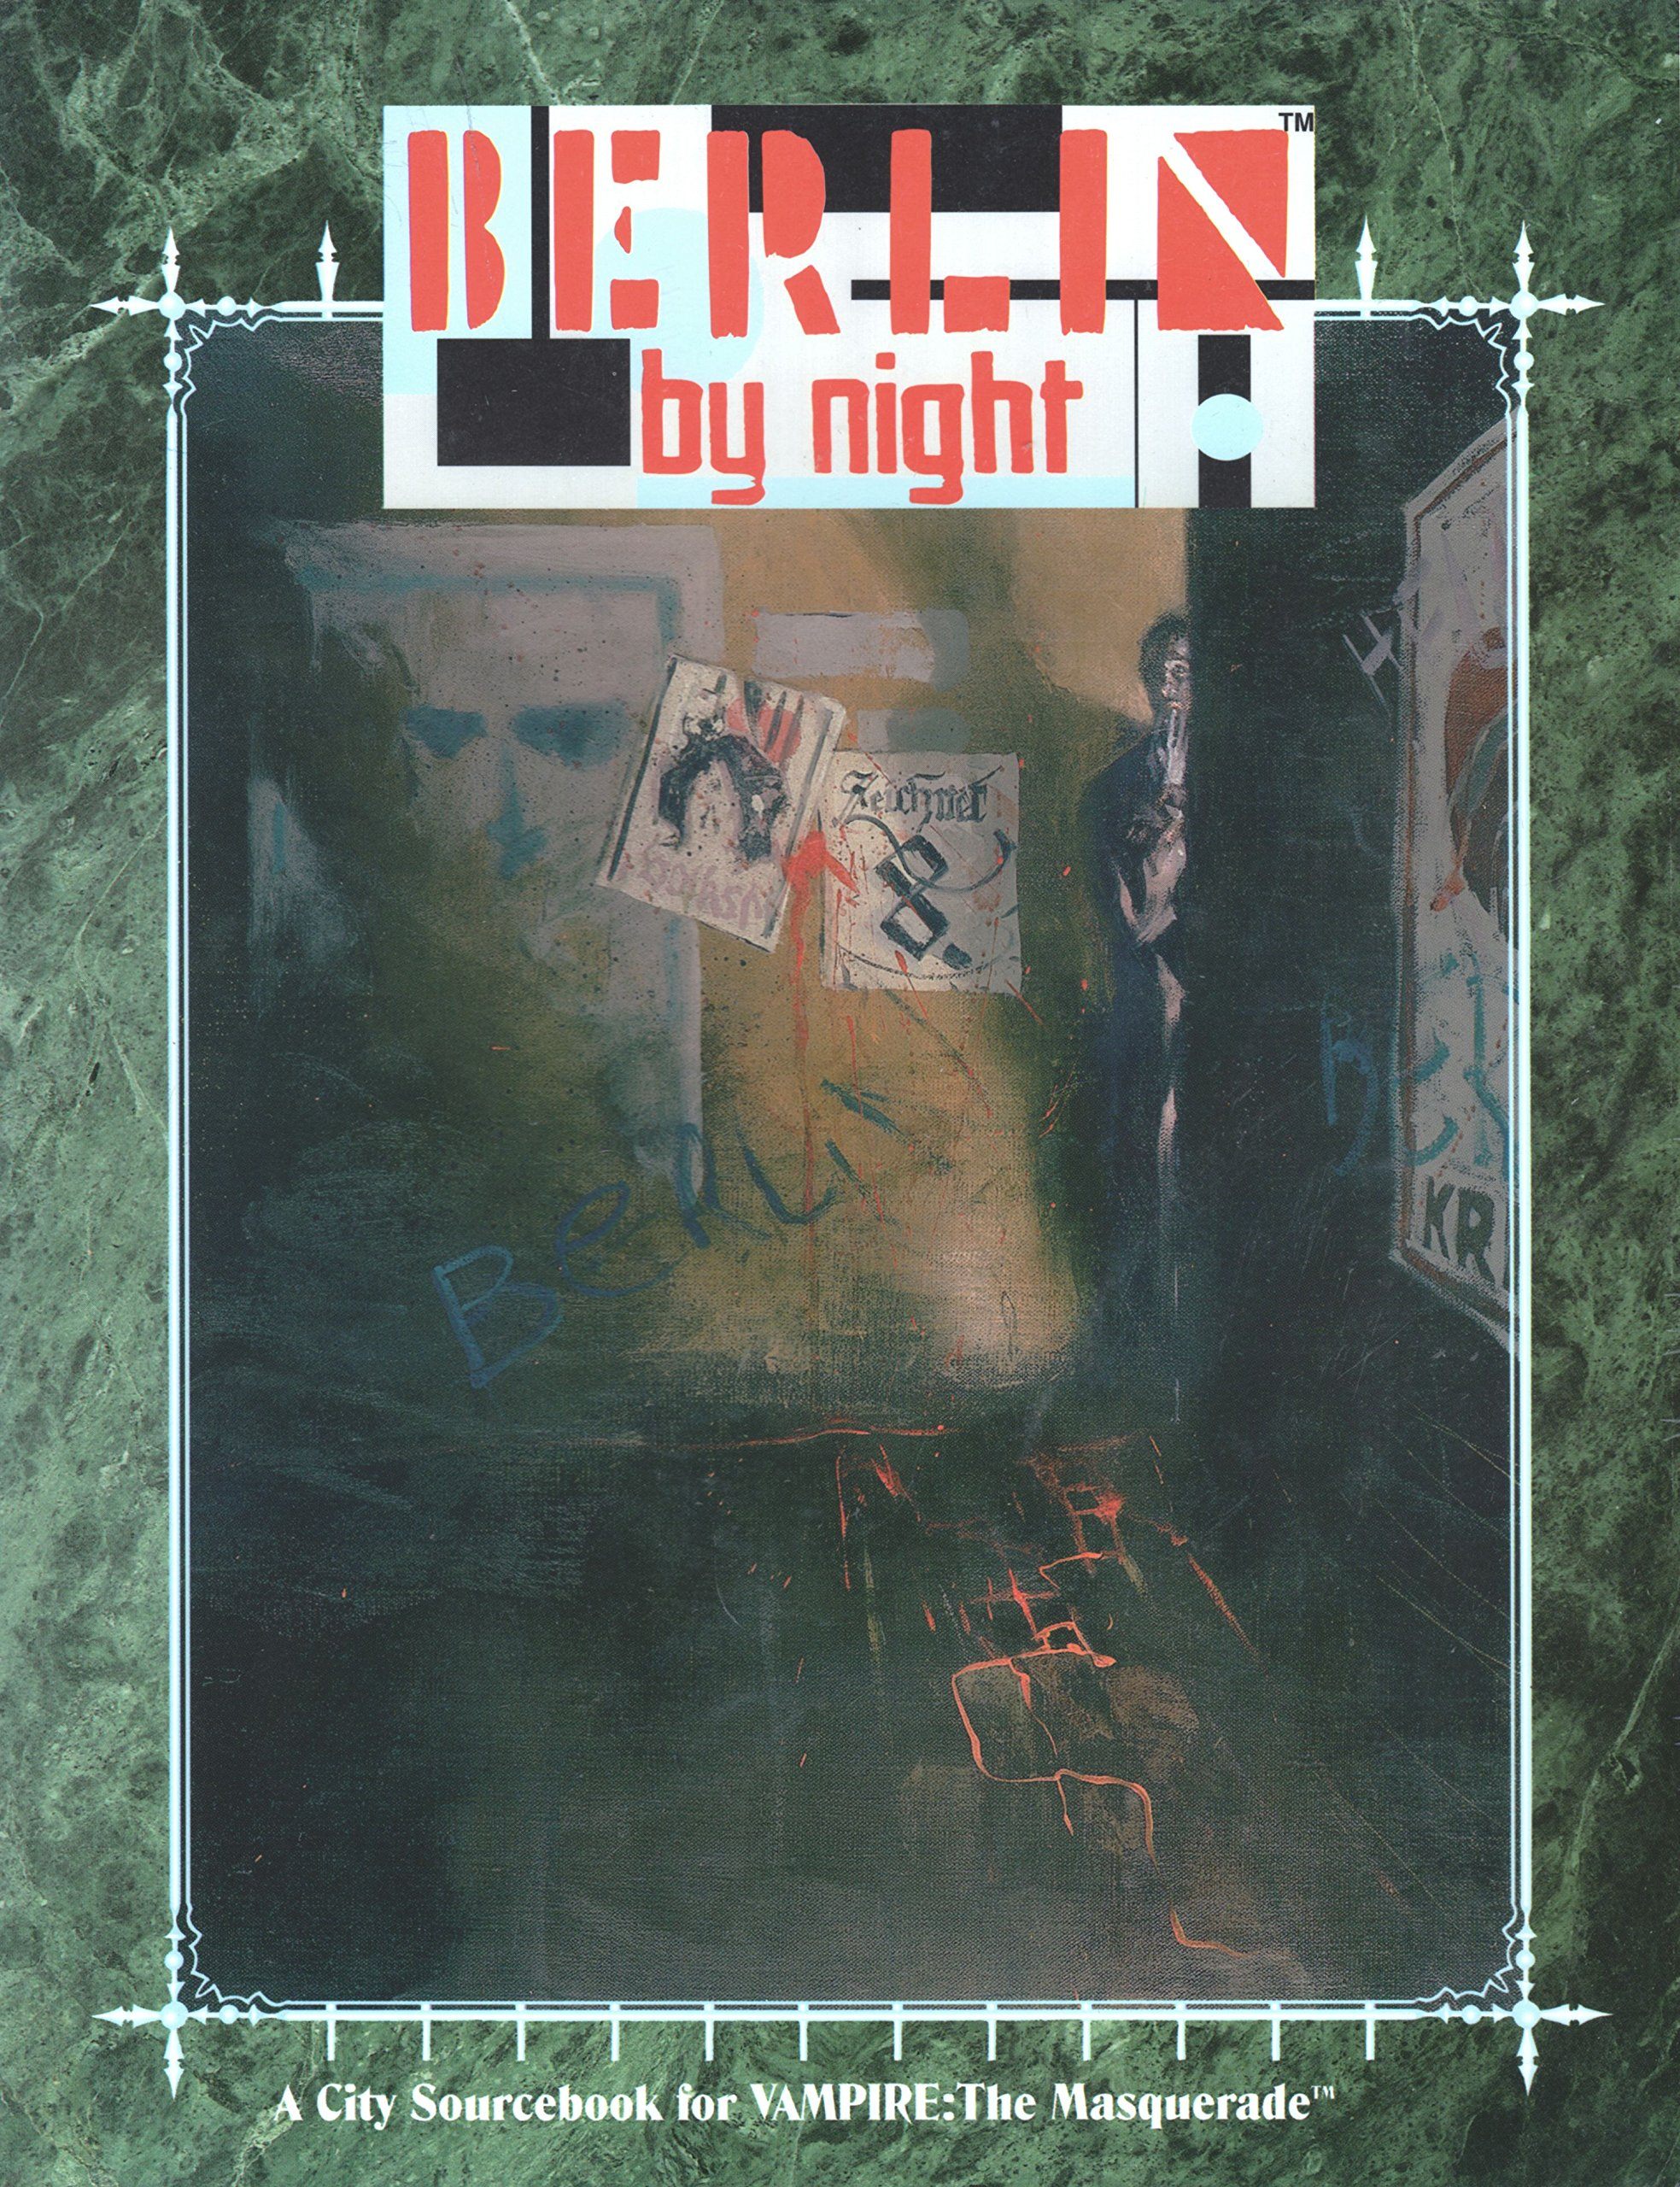 Berlin by Night: A City Sourcebook for Vampire: The